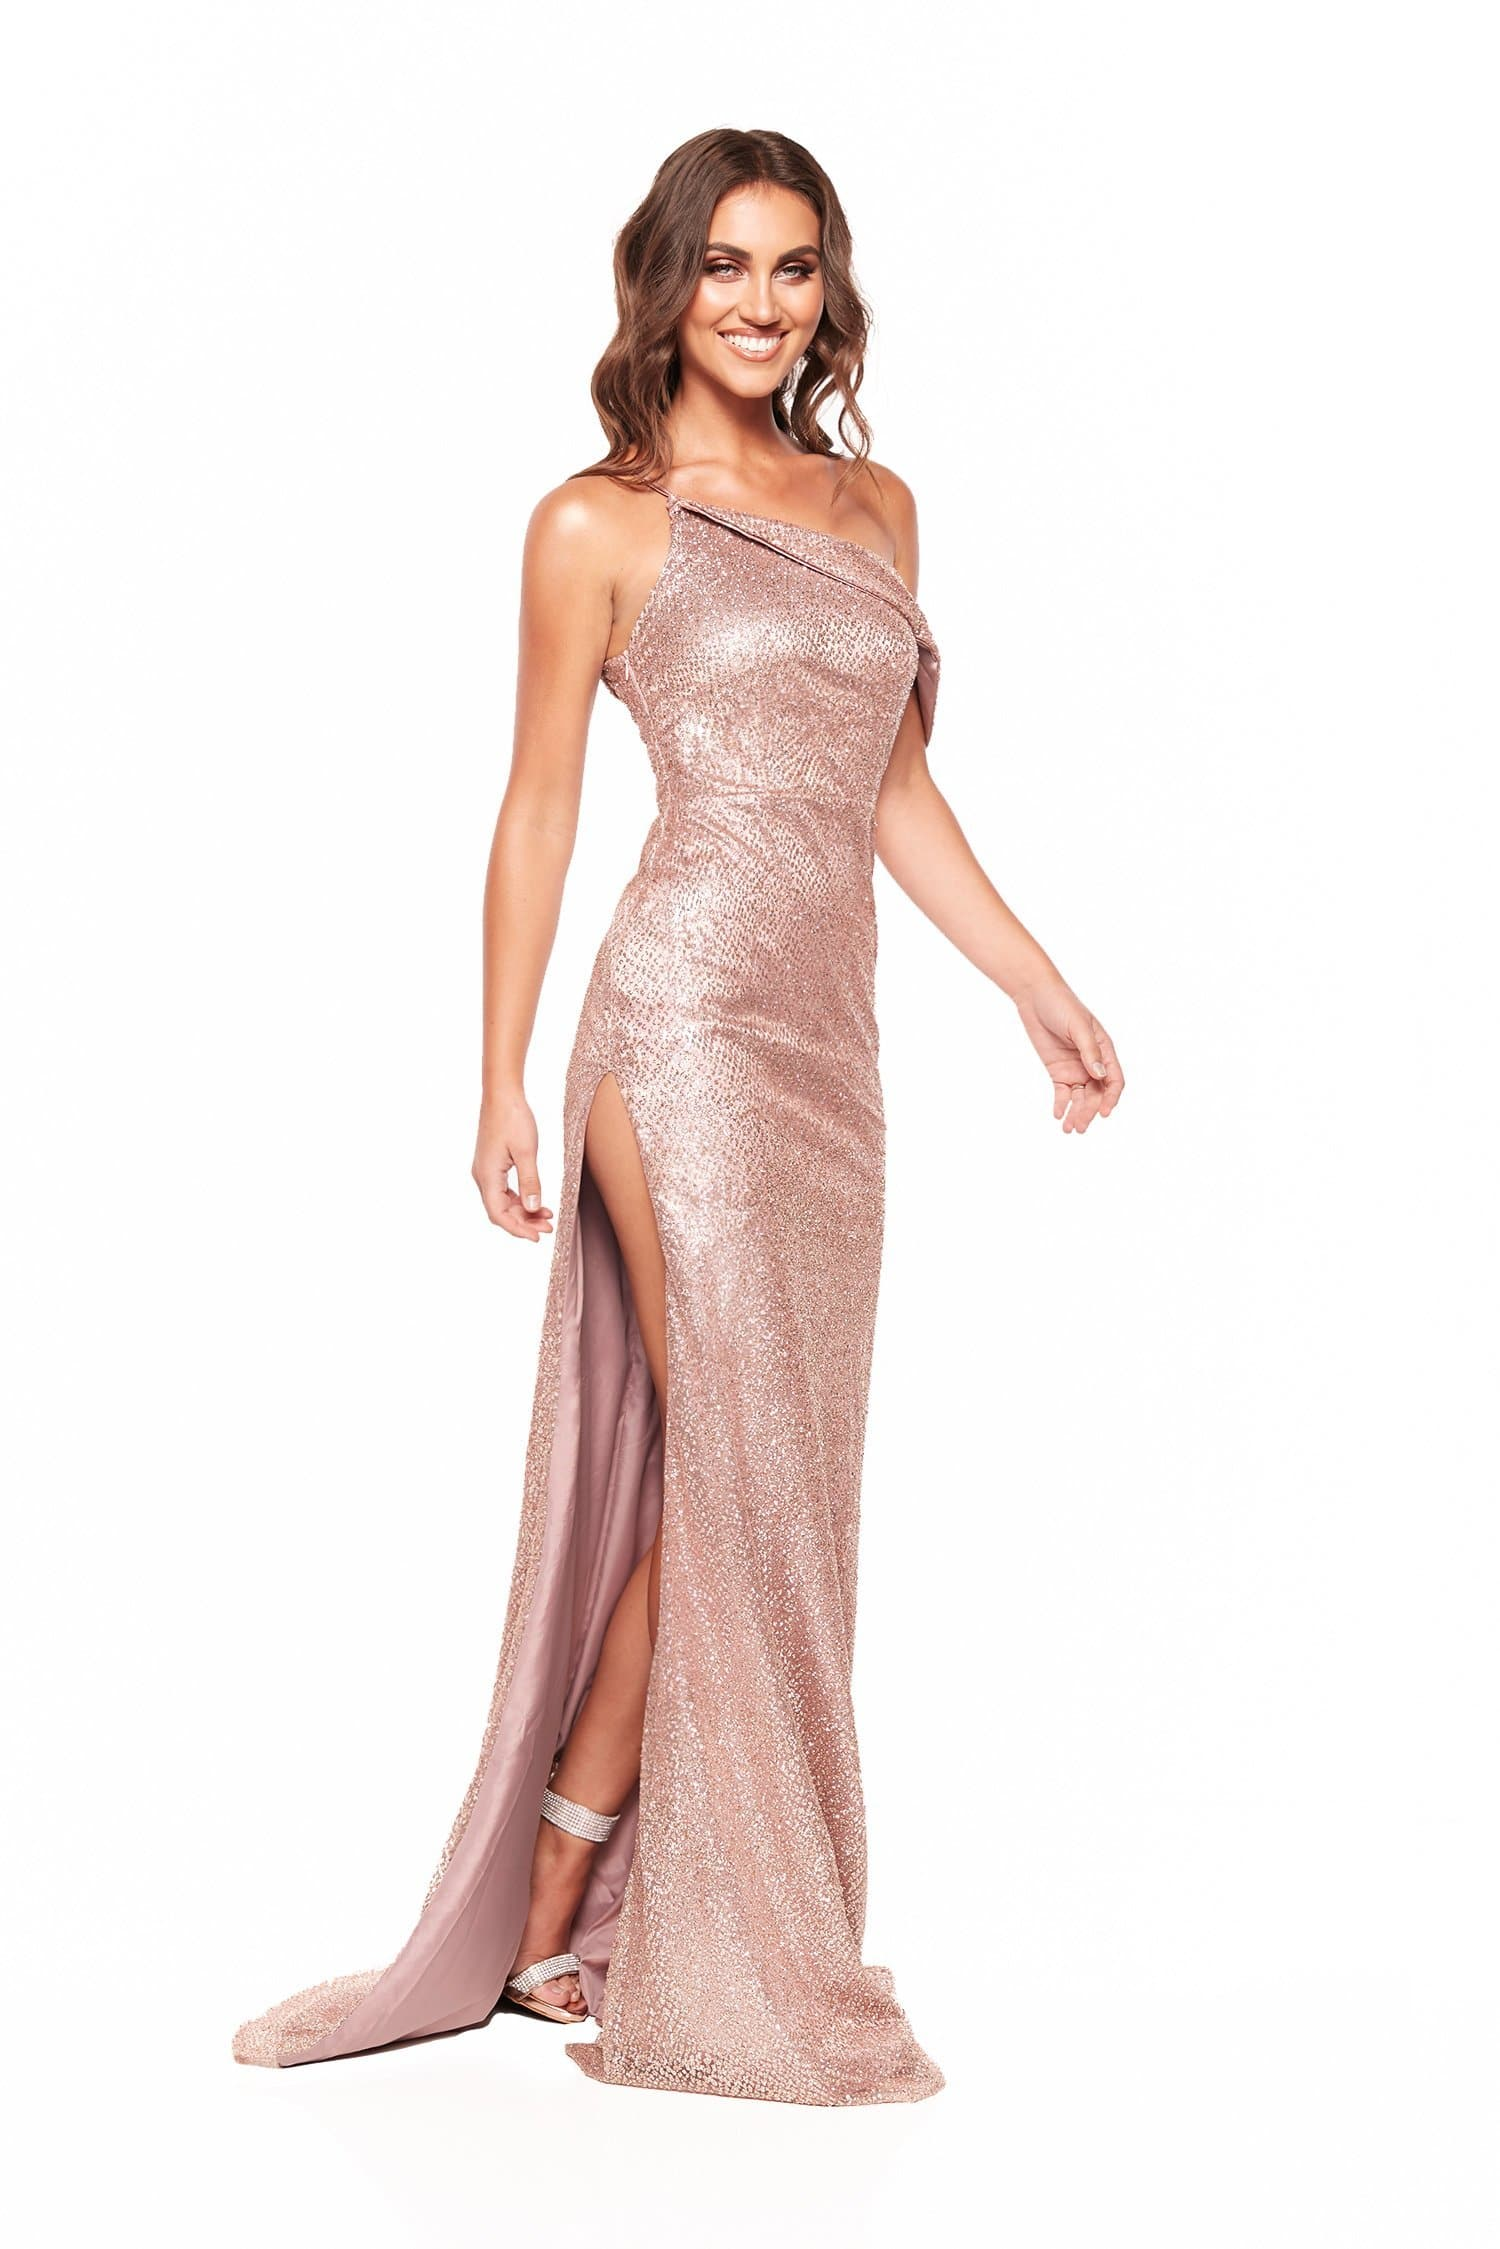 A&N Rita - One Shoulder Glitter Gown with Side Slit in Rose Gold ...